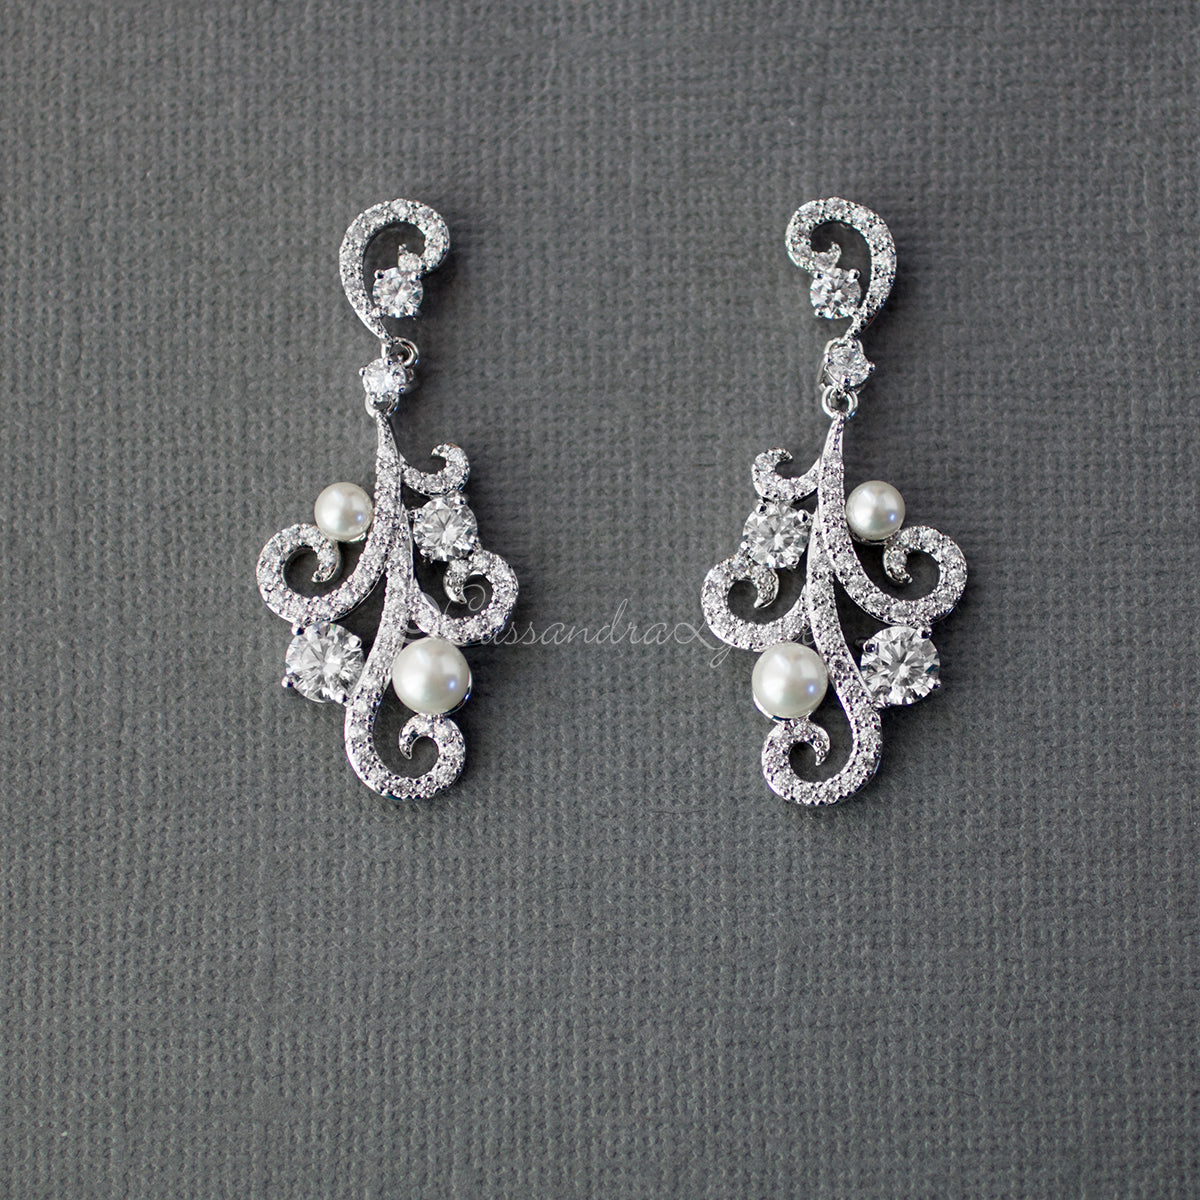 Clip On Pearl CZ Earrings with a Swirl Design